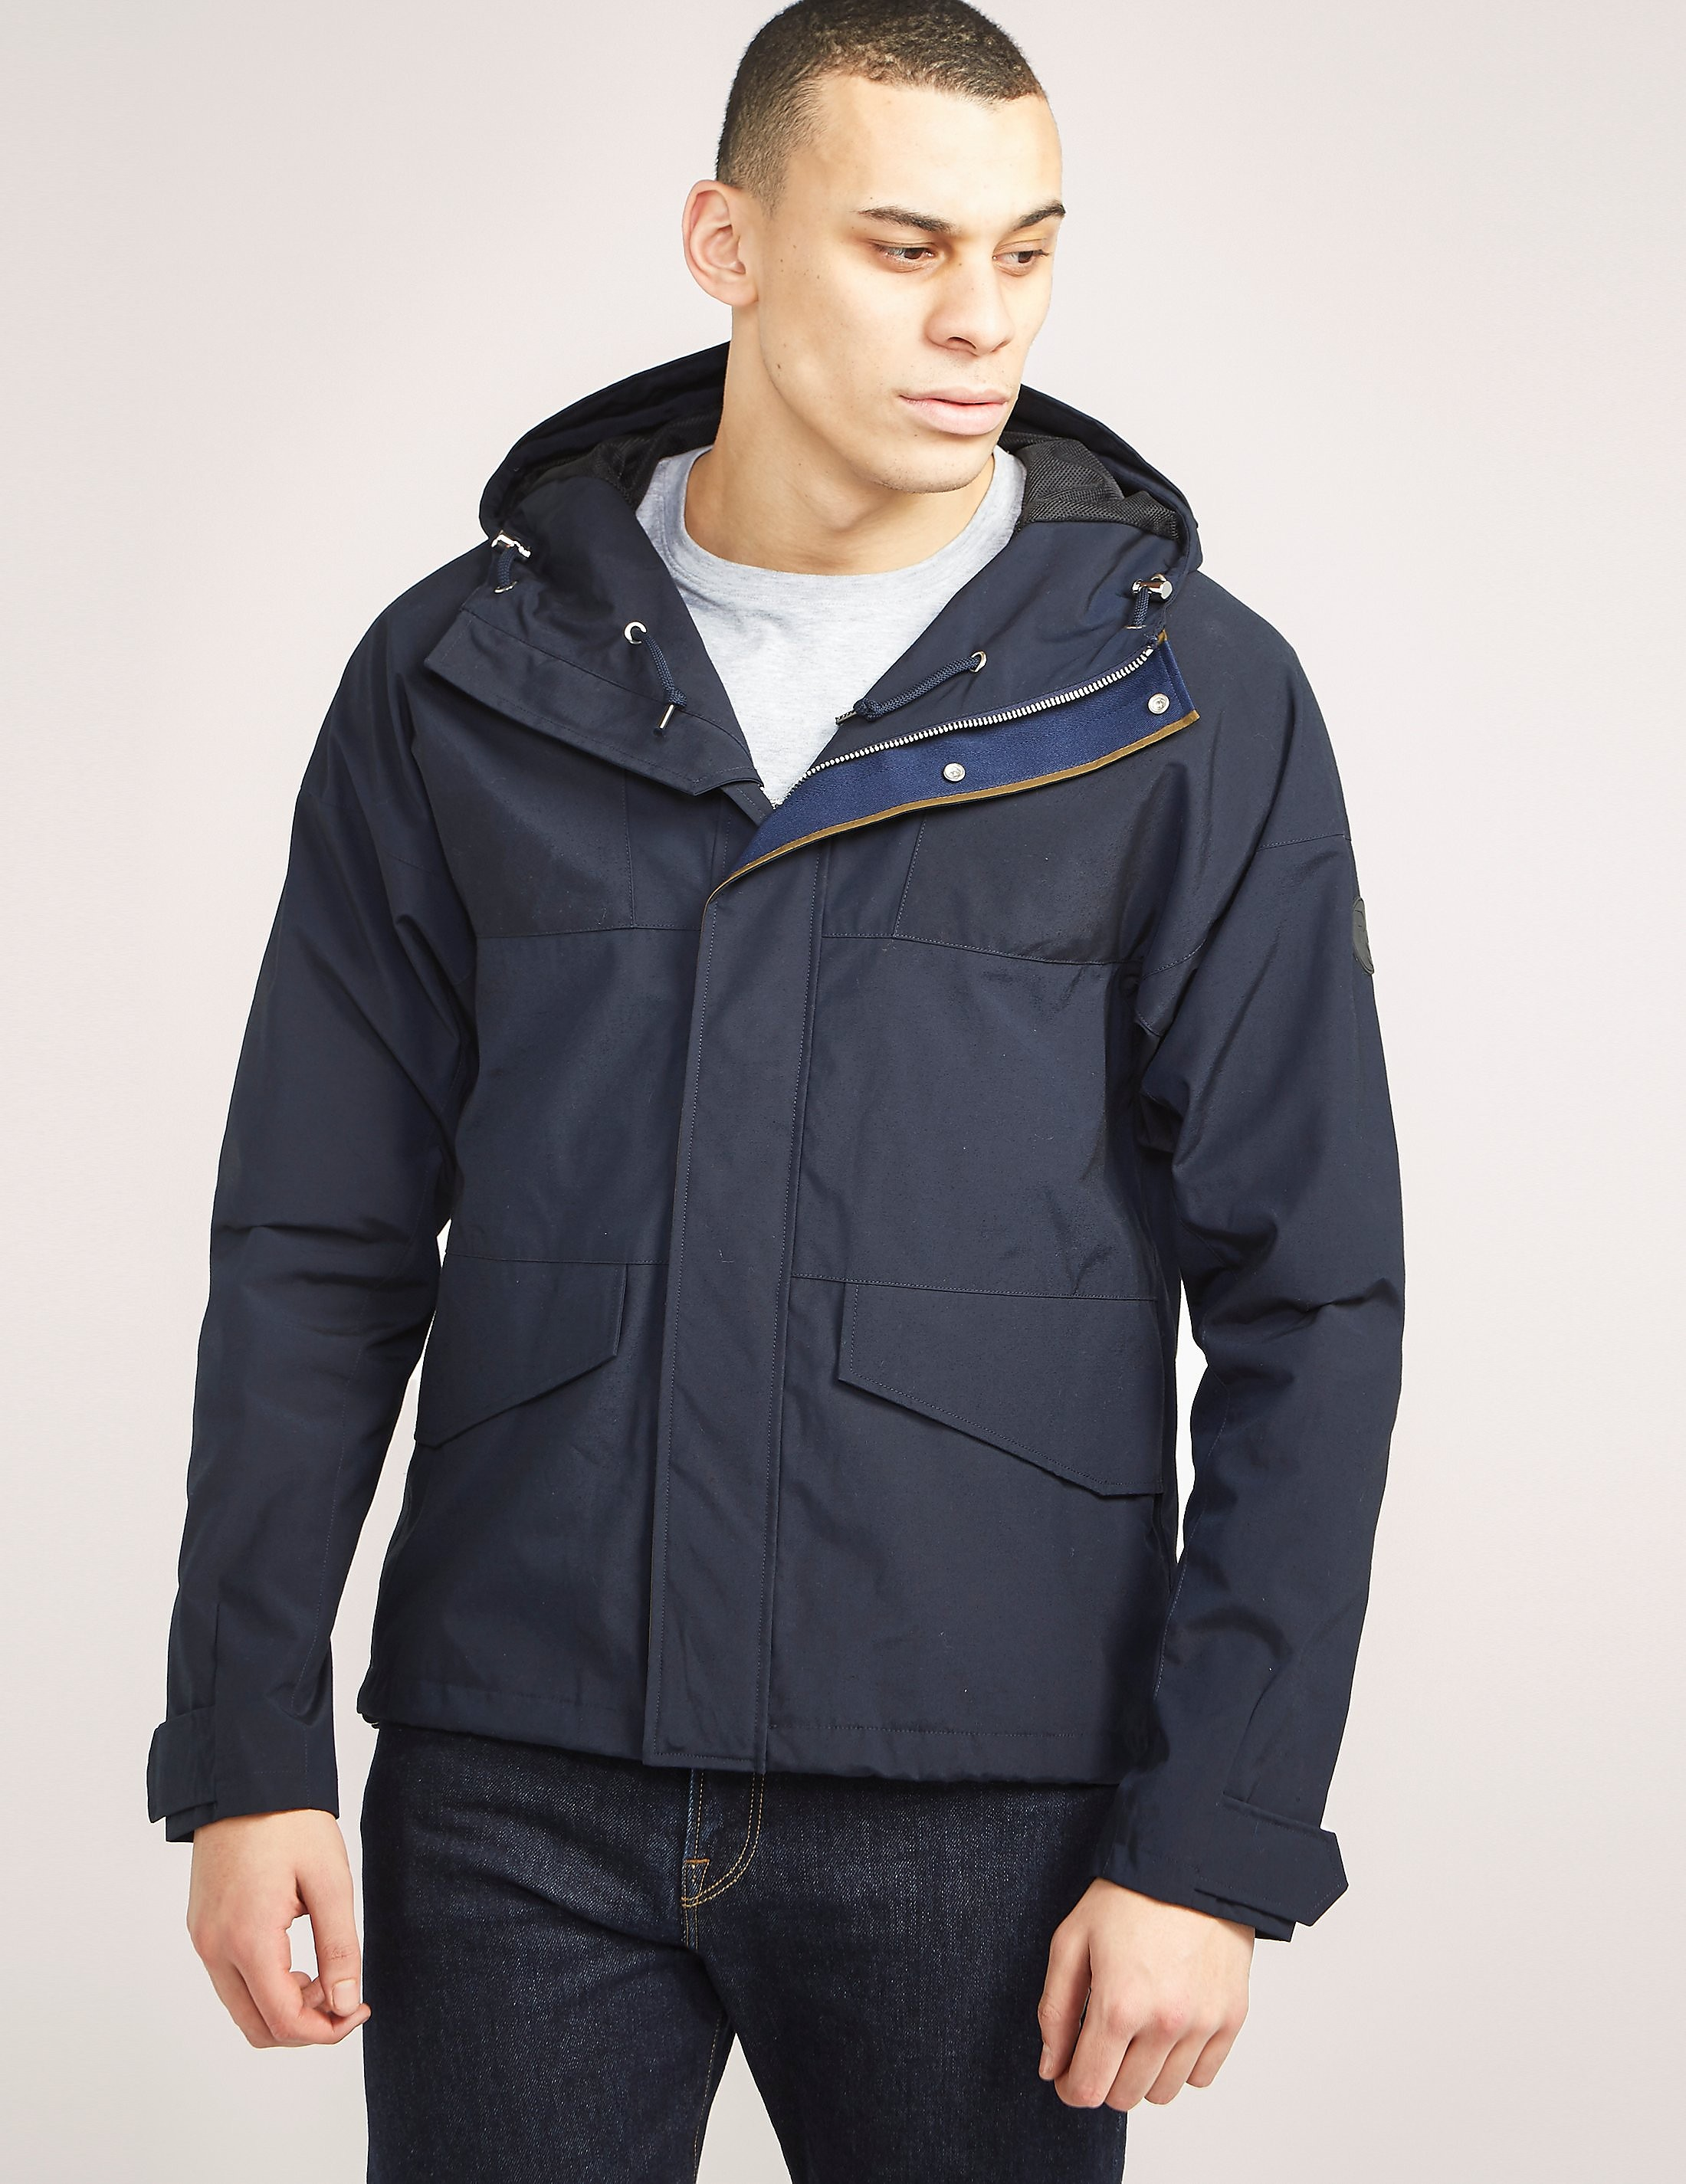 Paul Smith Polycotton Hooded Jacket